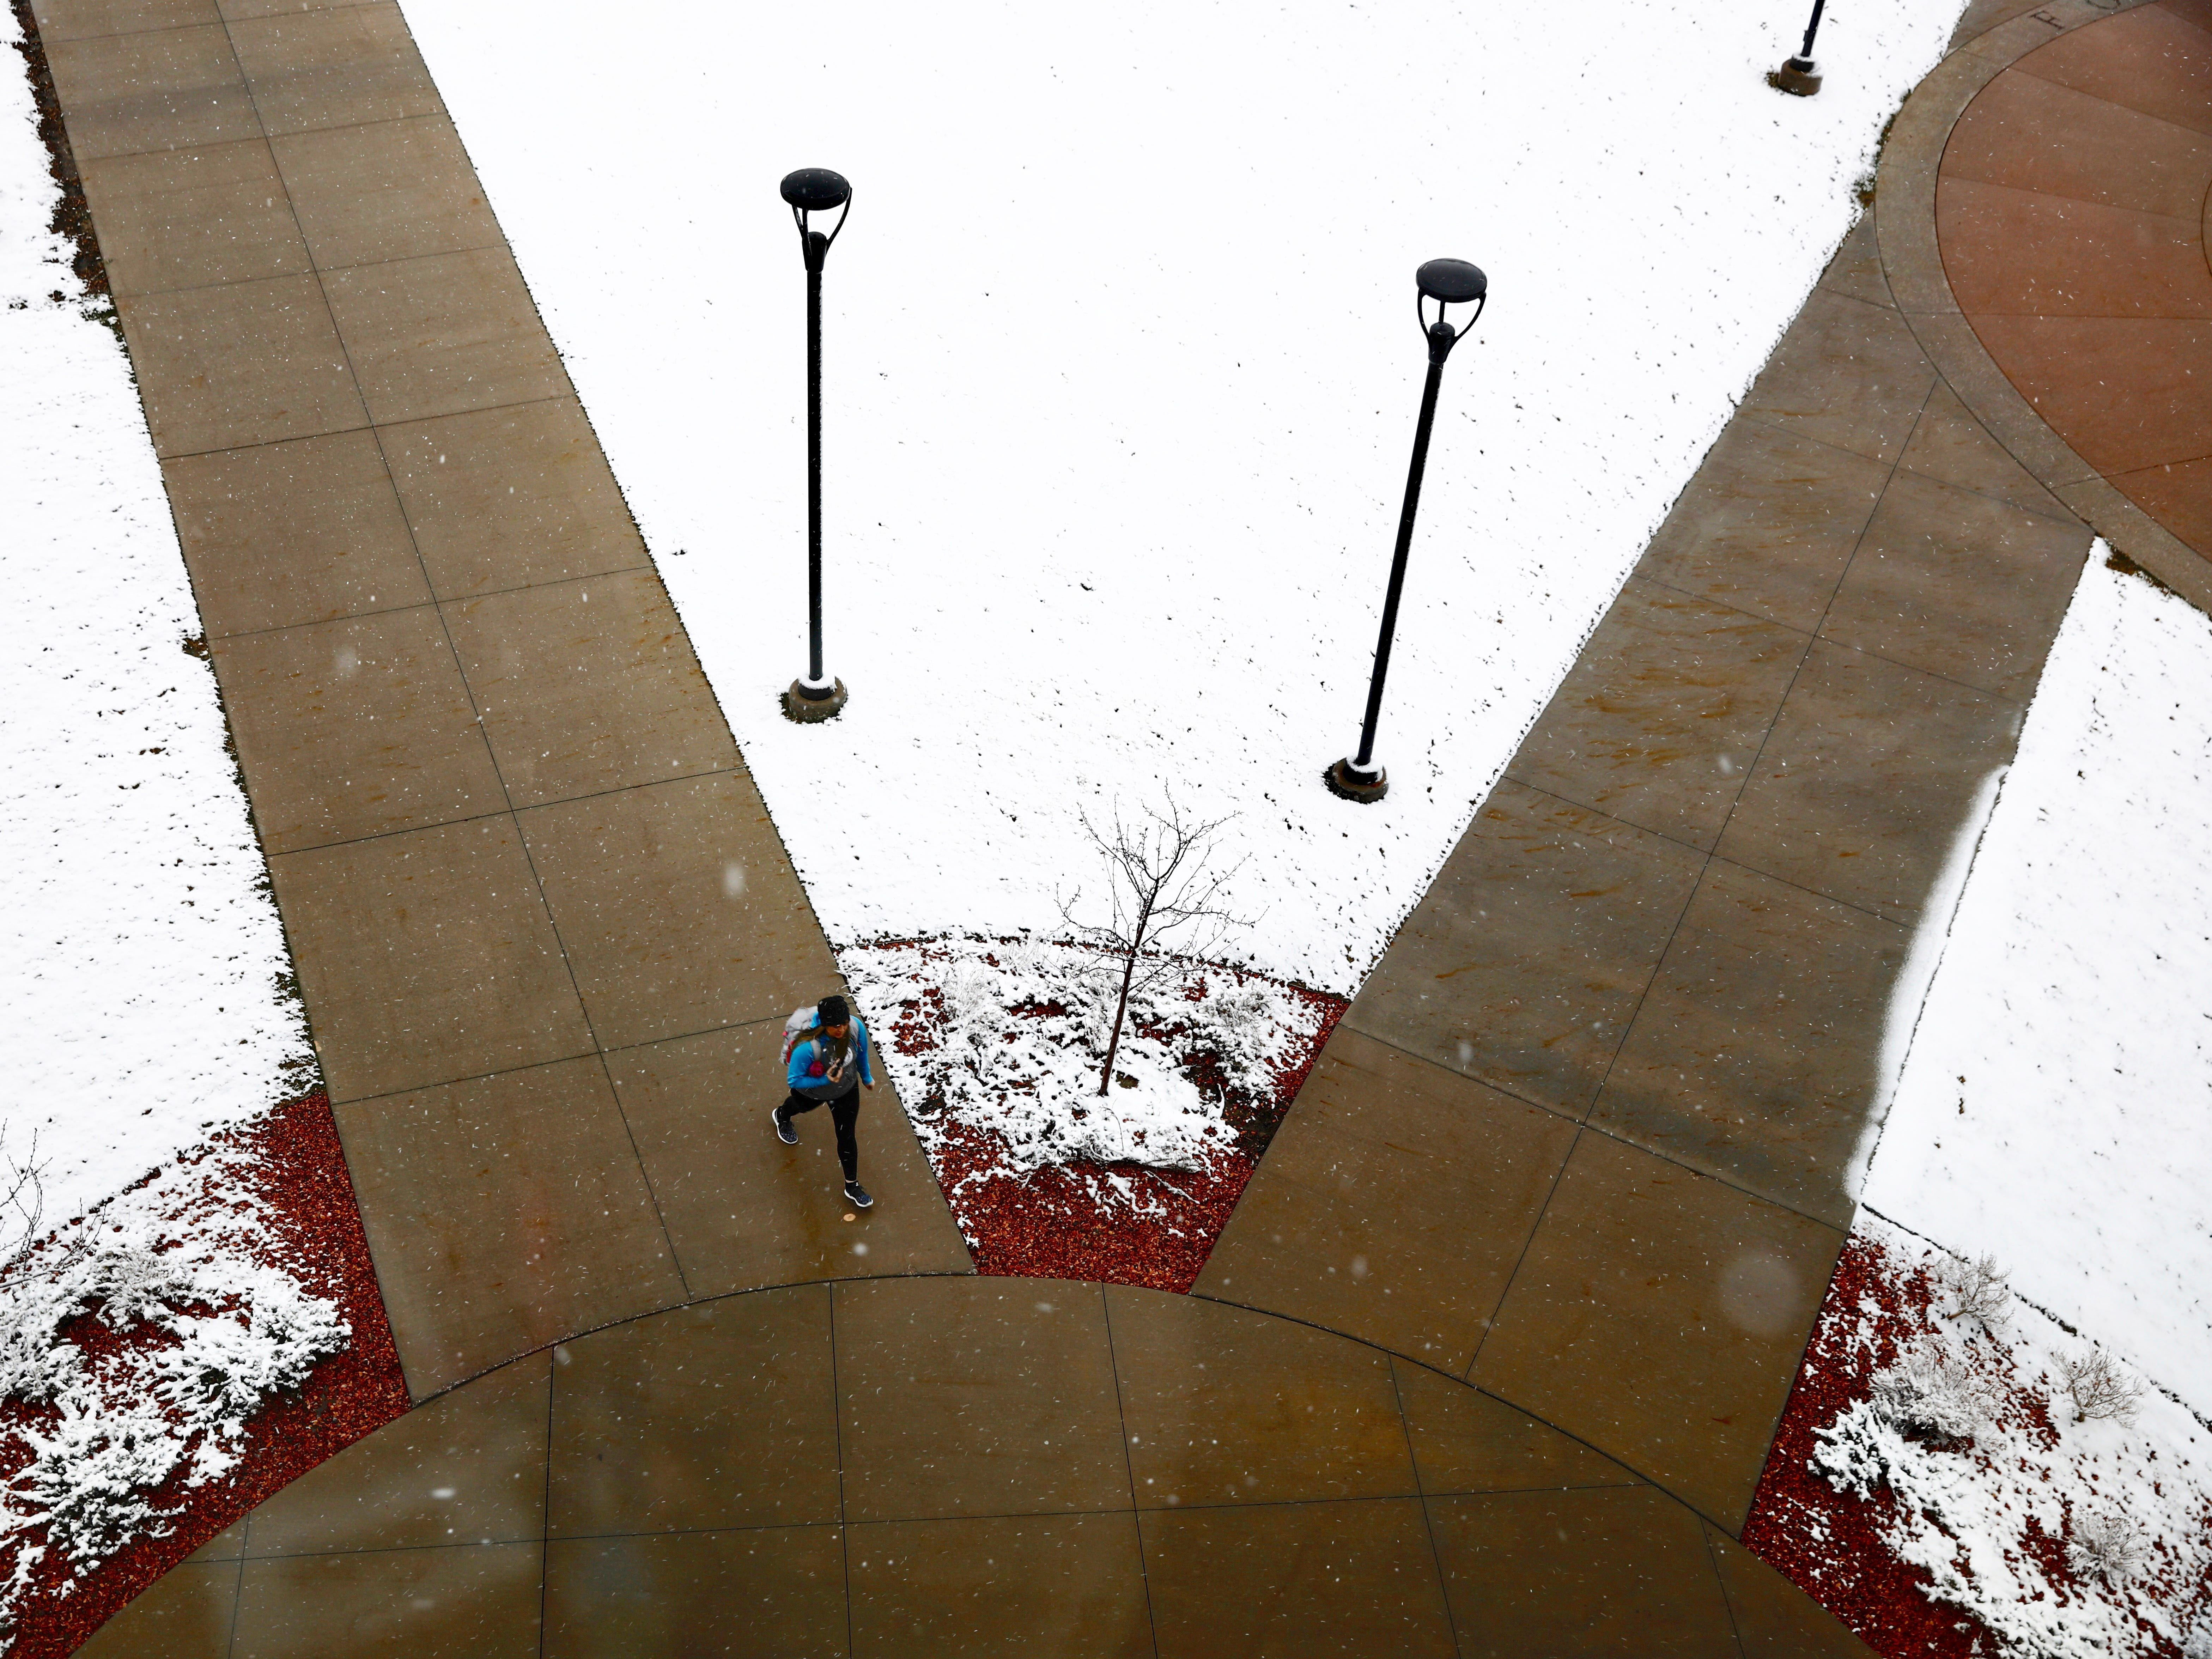 A student walks towards the Casper College student union Wednesday morning, April 10, 2019, after snow layered the grounds of the common area in Casper, Wyoming. The National Weather Services said Wednesday that a winter storm could bring up to 12 inches of snow to parts of Wyoming.